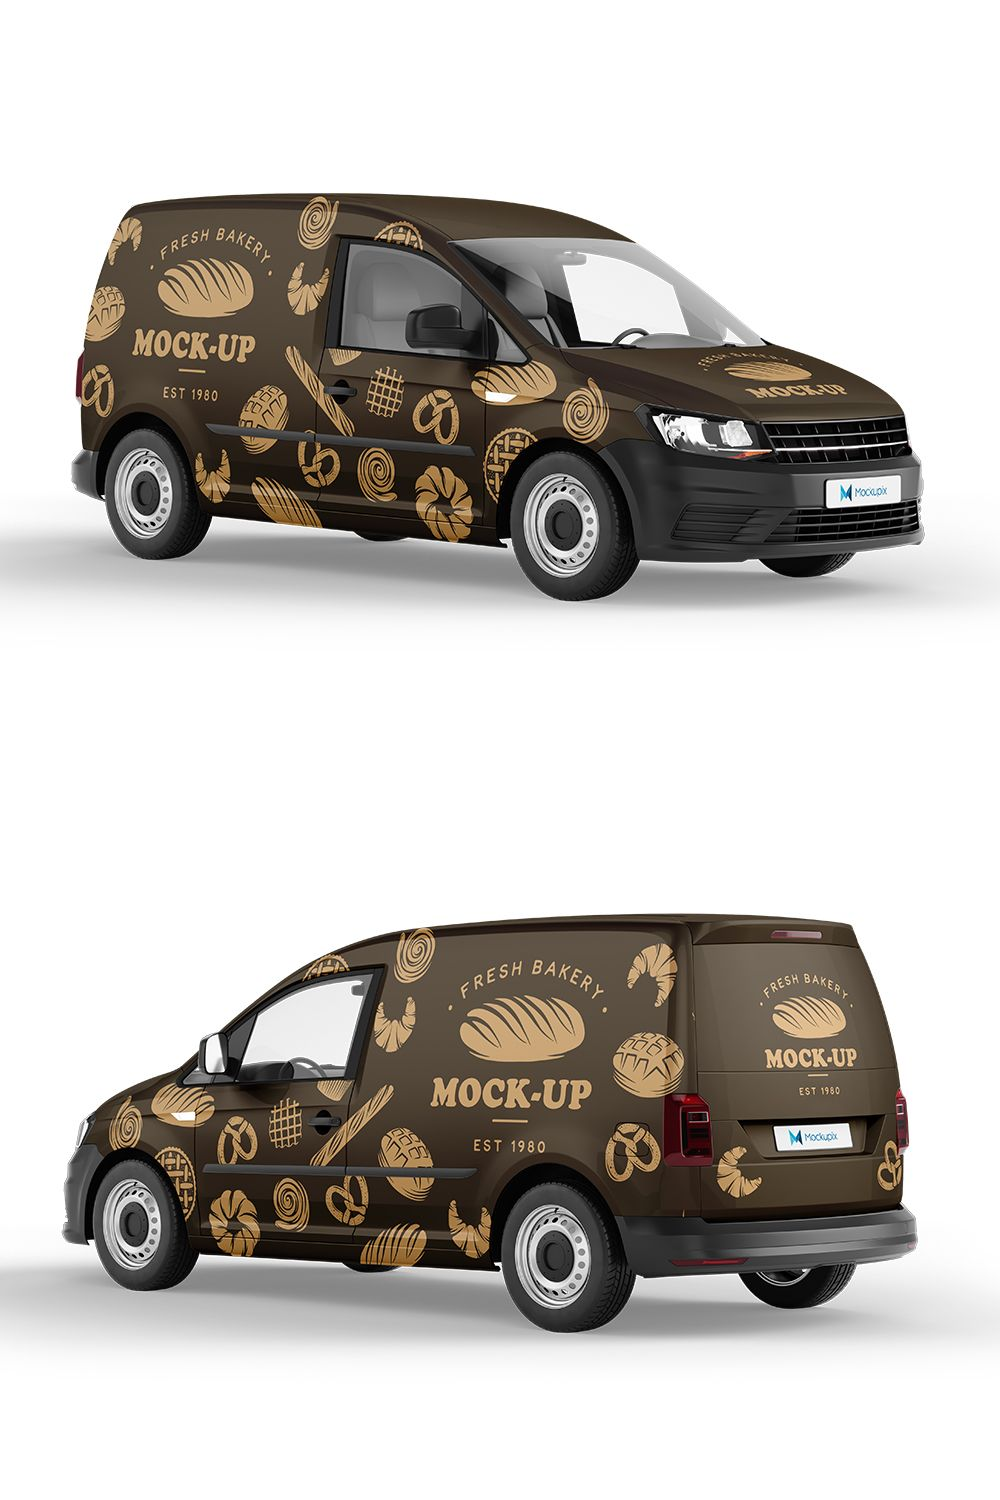 Delivery Car mockup. Bakery wrapping example.